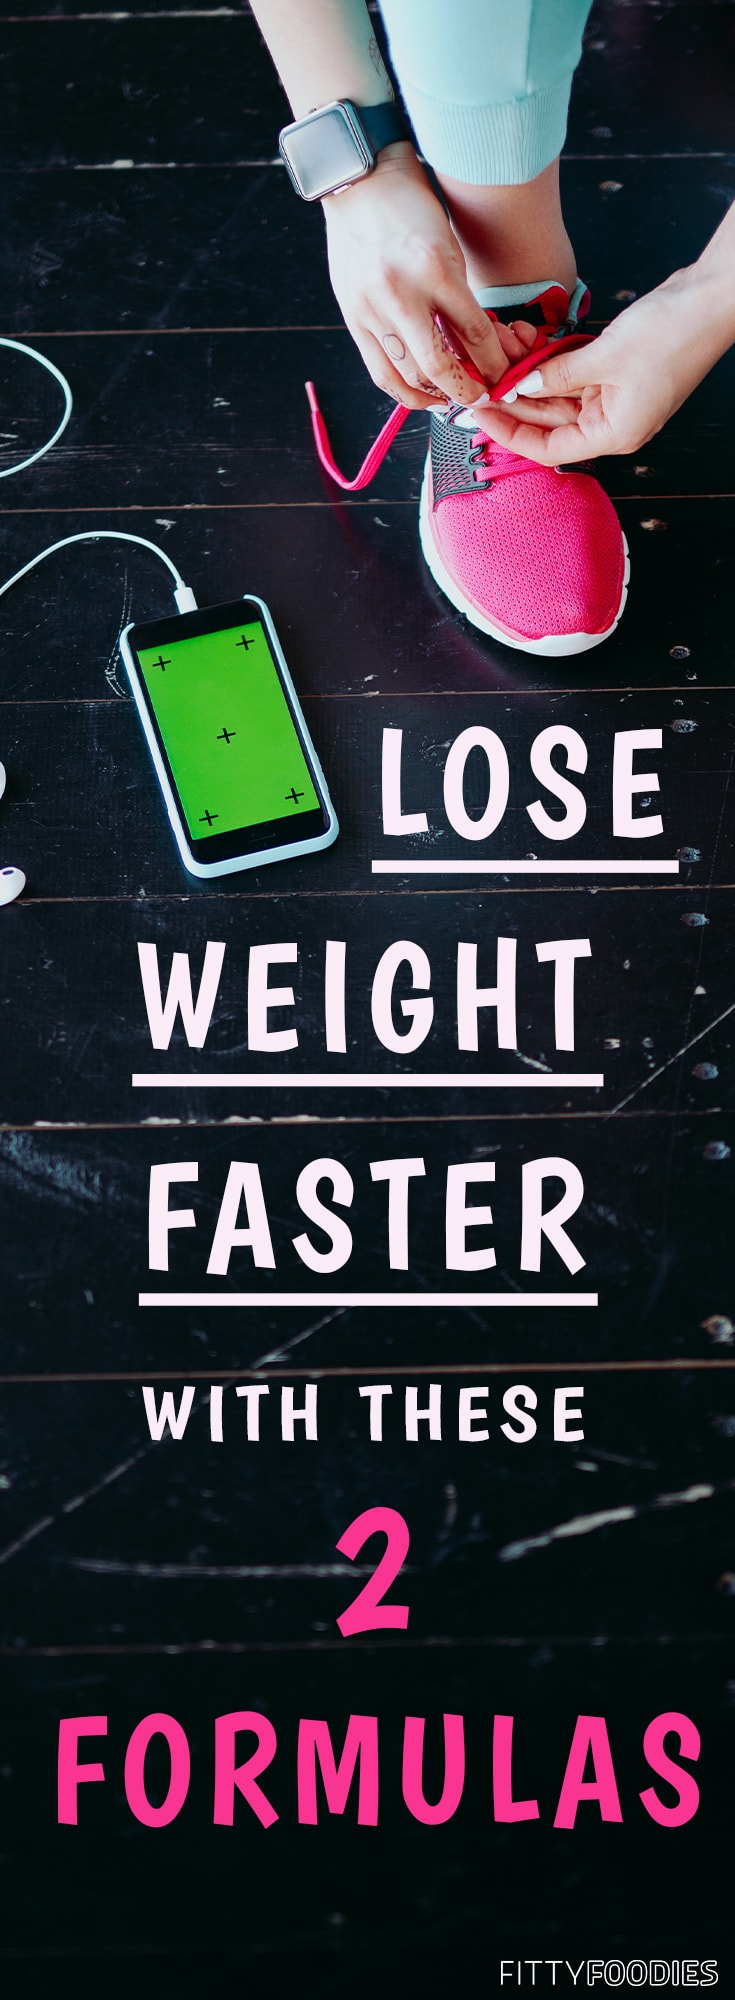 Lose Weight Faster With These 2 Formulas Fittyfoodies